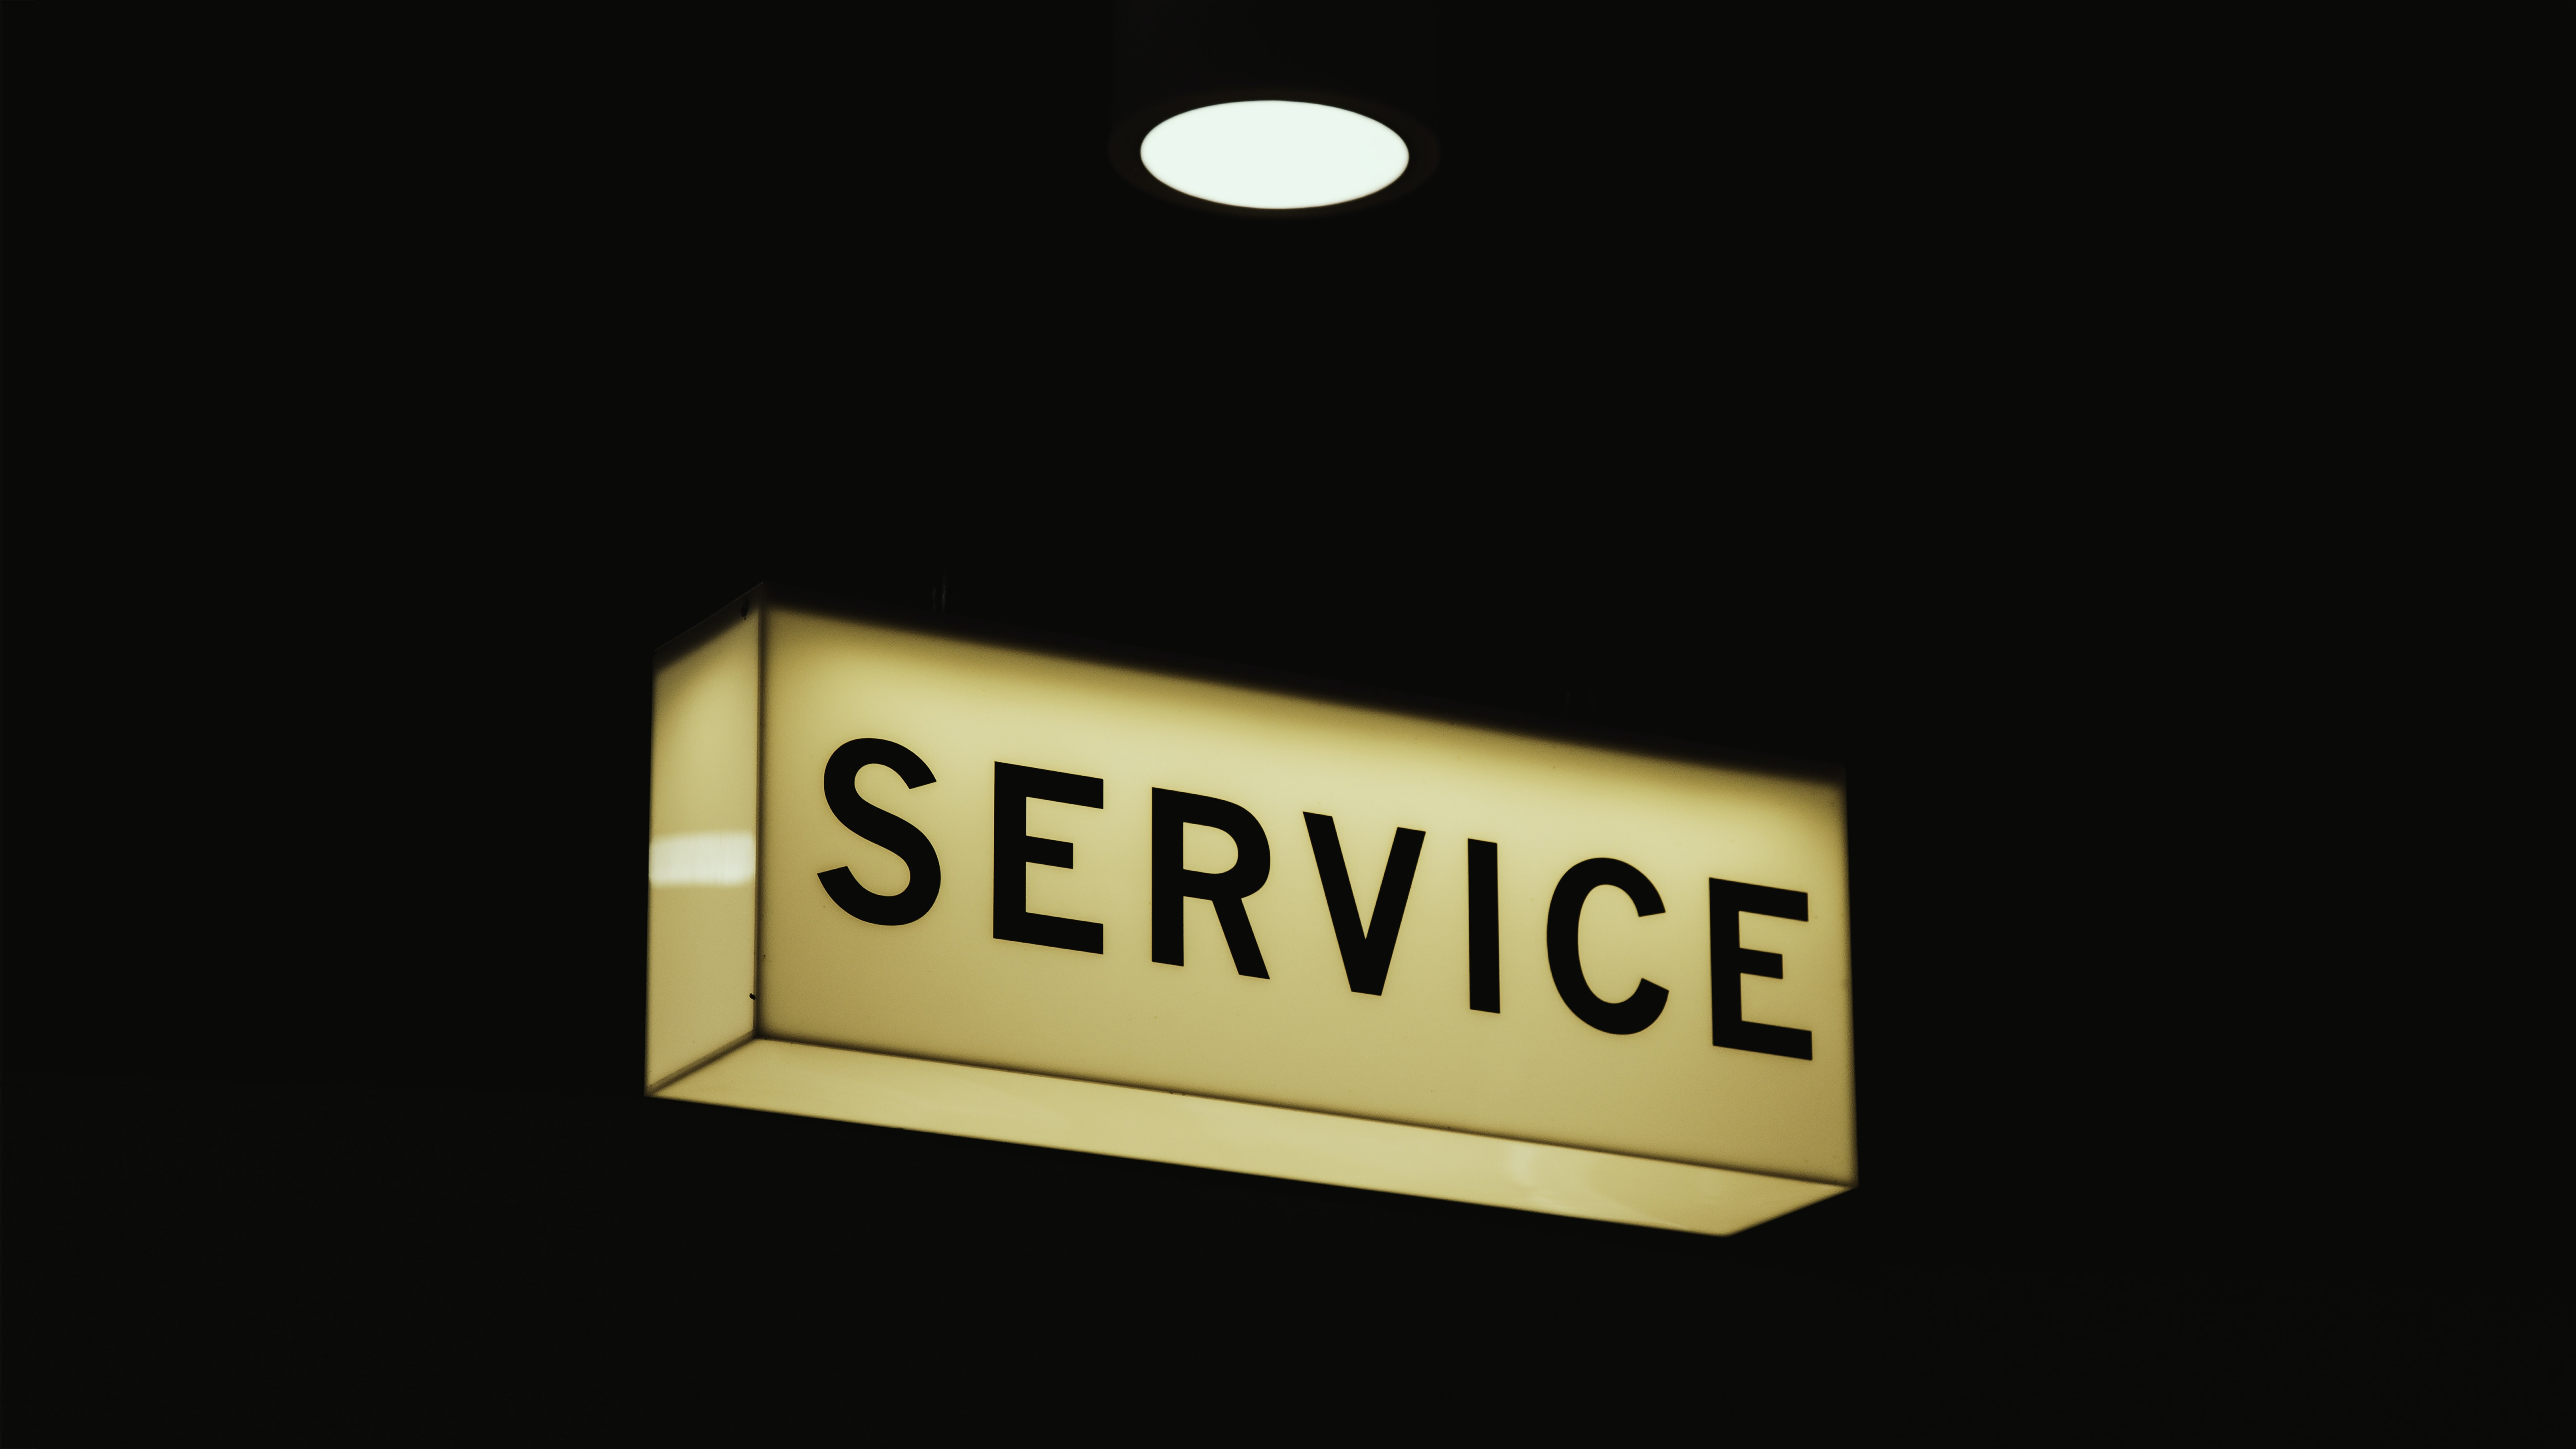 turned on service LED signage